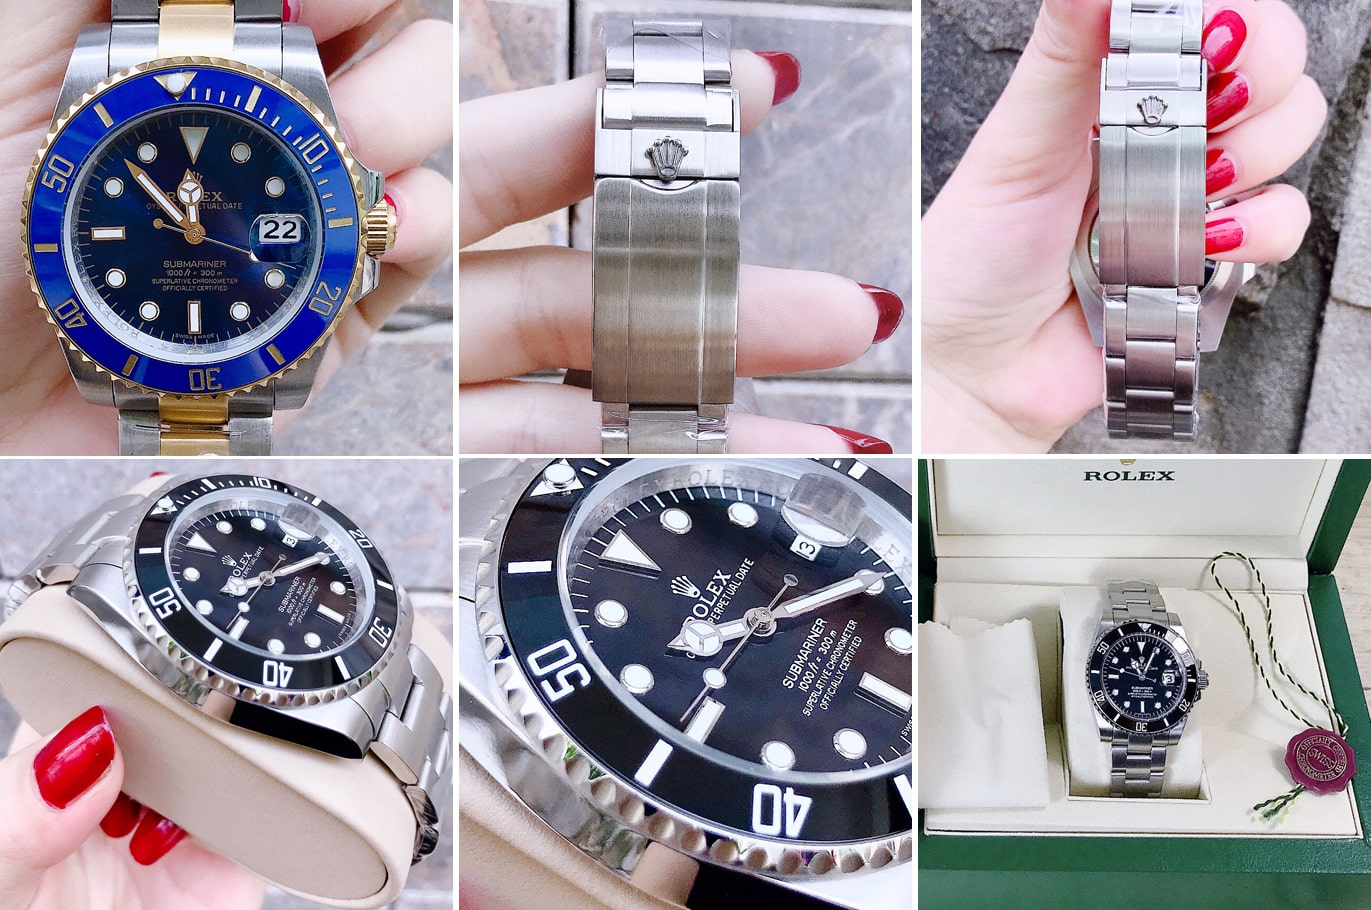 Hinh-anh-thuc-te-Dong-ho-Rolex-oyster-co-ms-086750